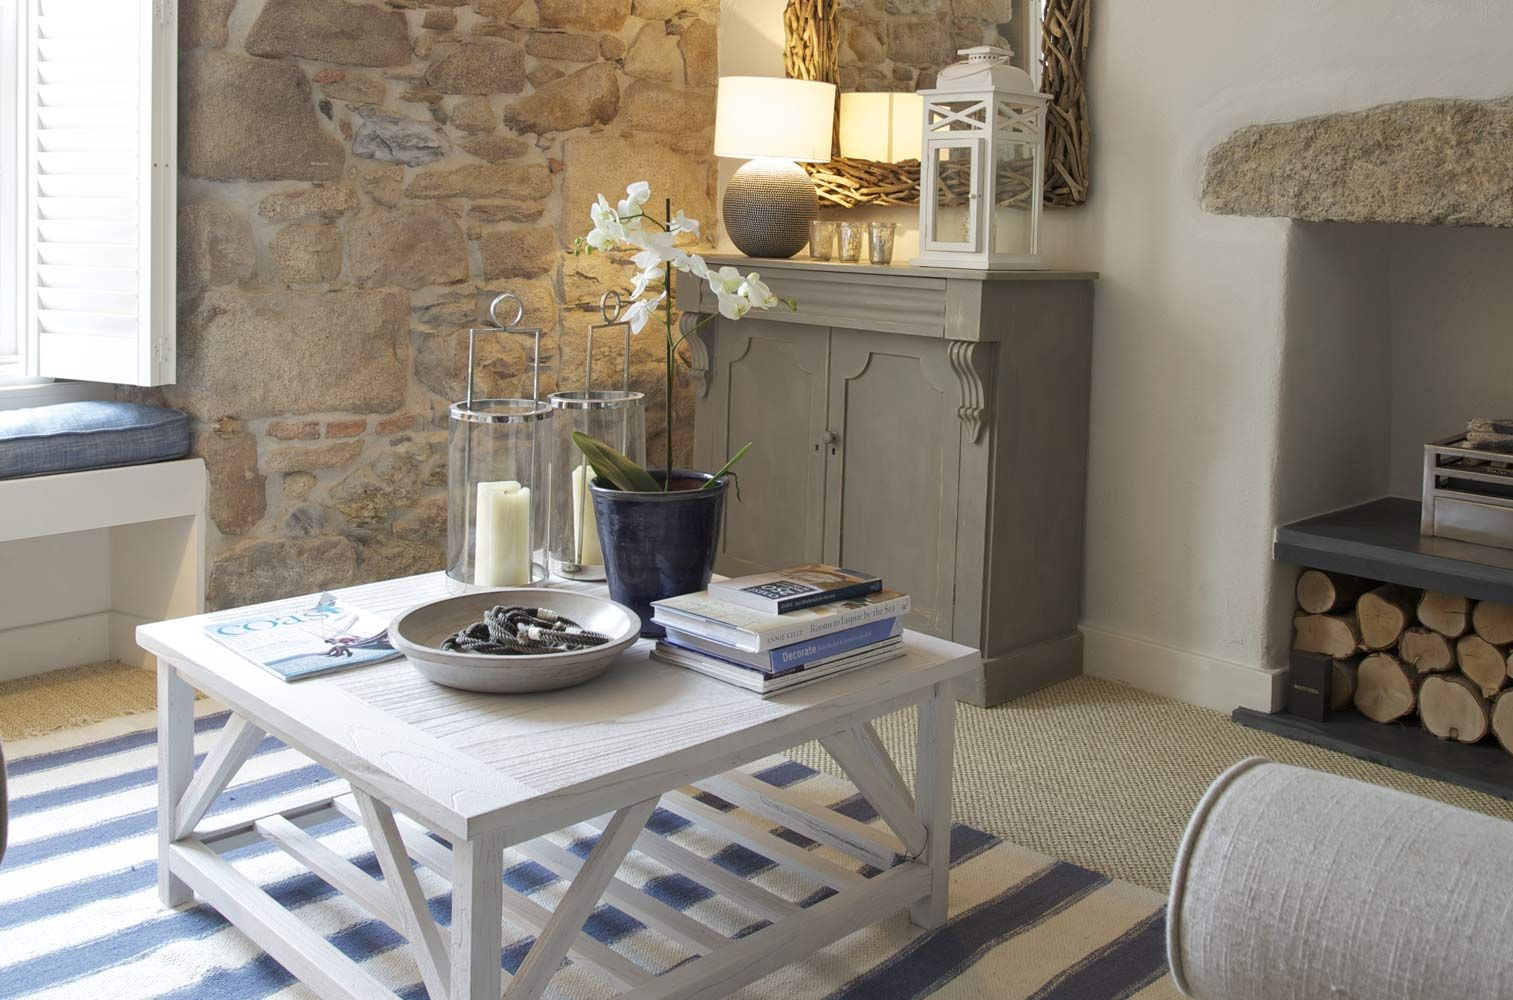 Elements That Make A Room: Expose Brick, Interesting Furniture Pieces With  A Nautical Touch.The Tide House, St Ives, Cornwall